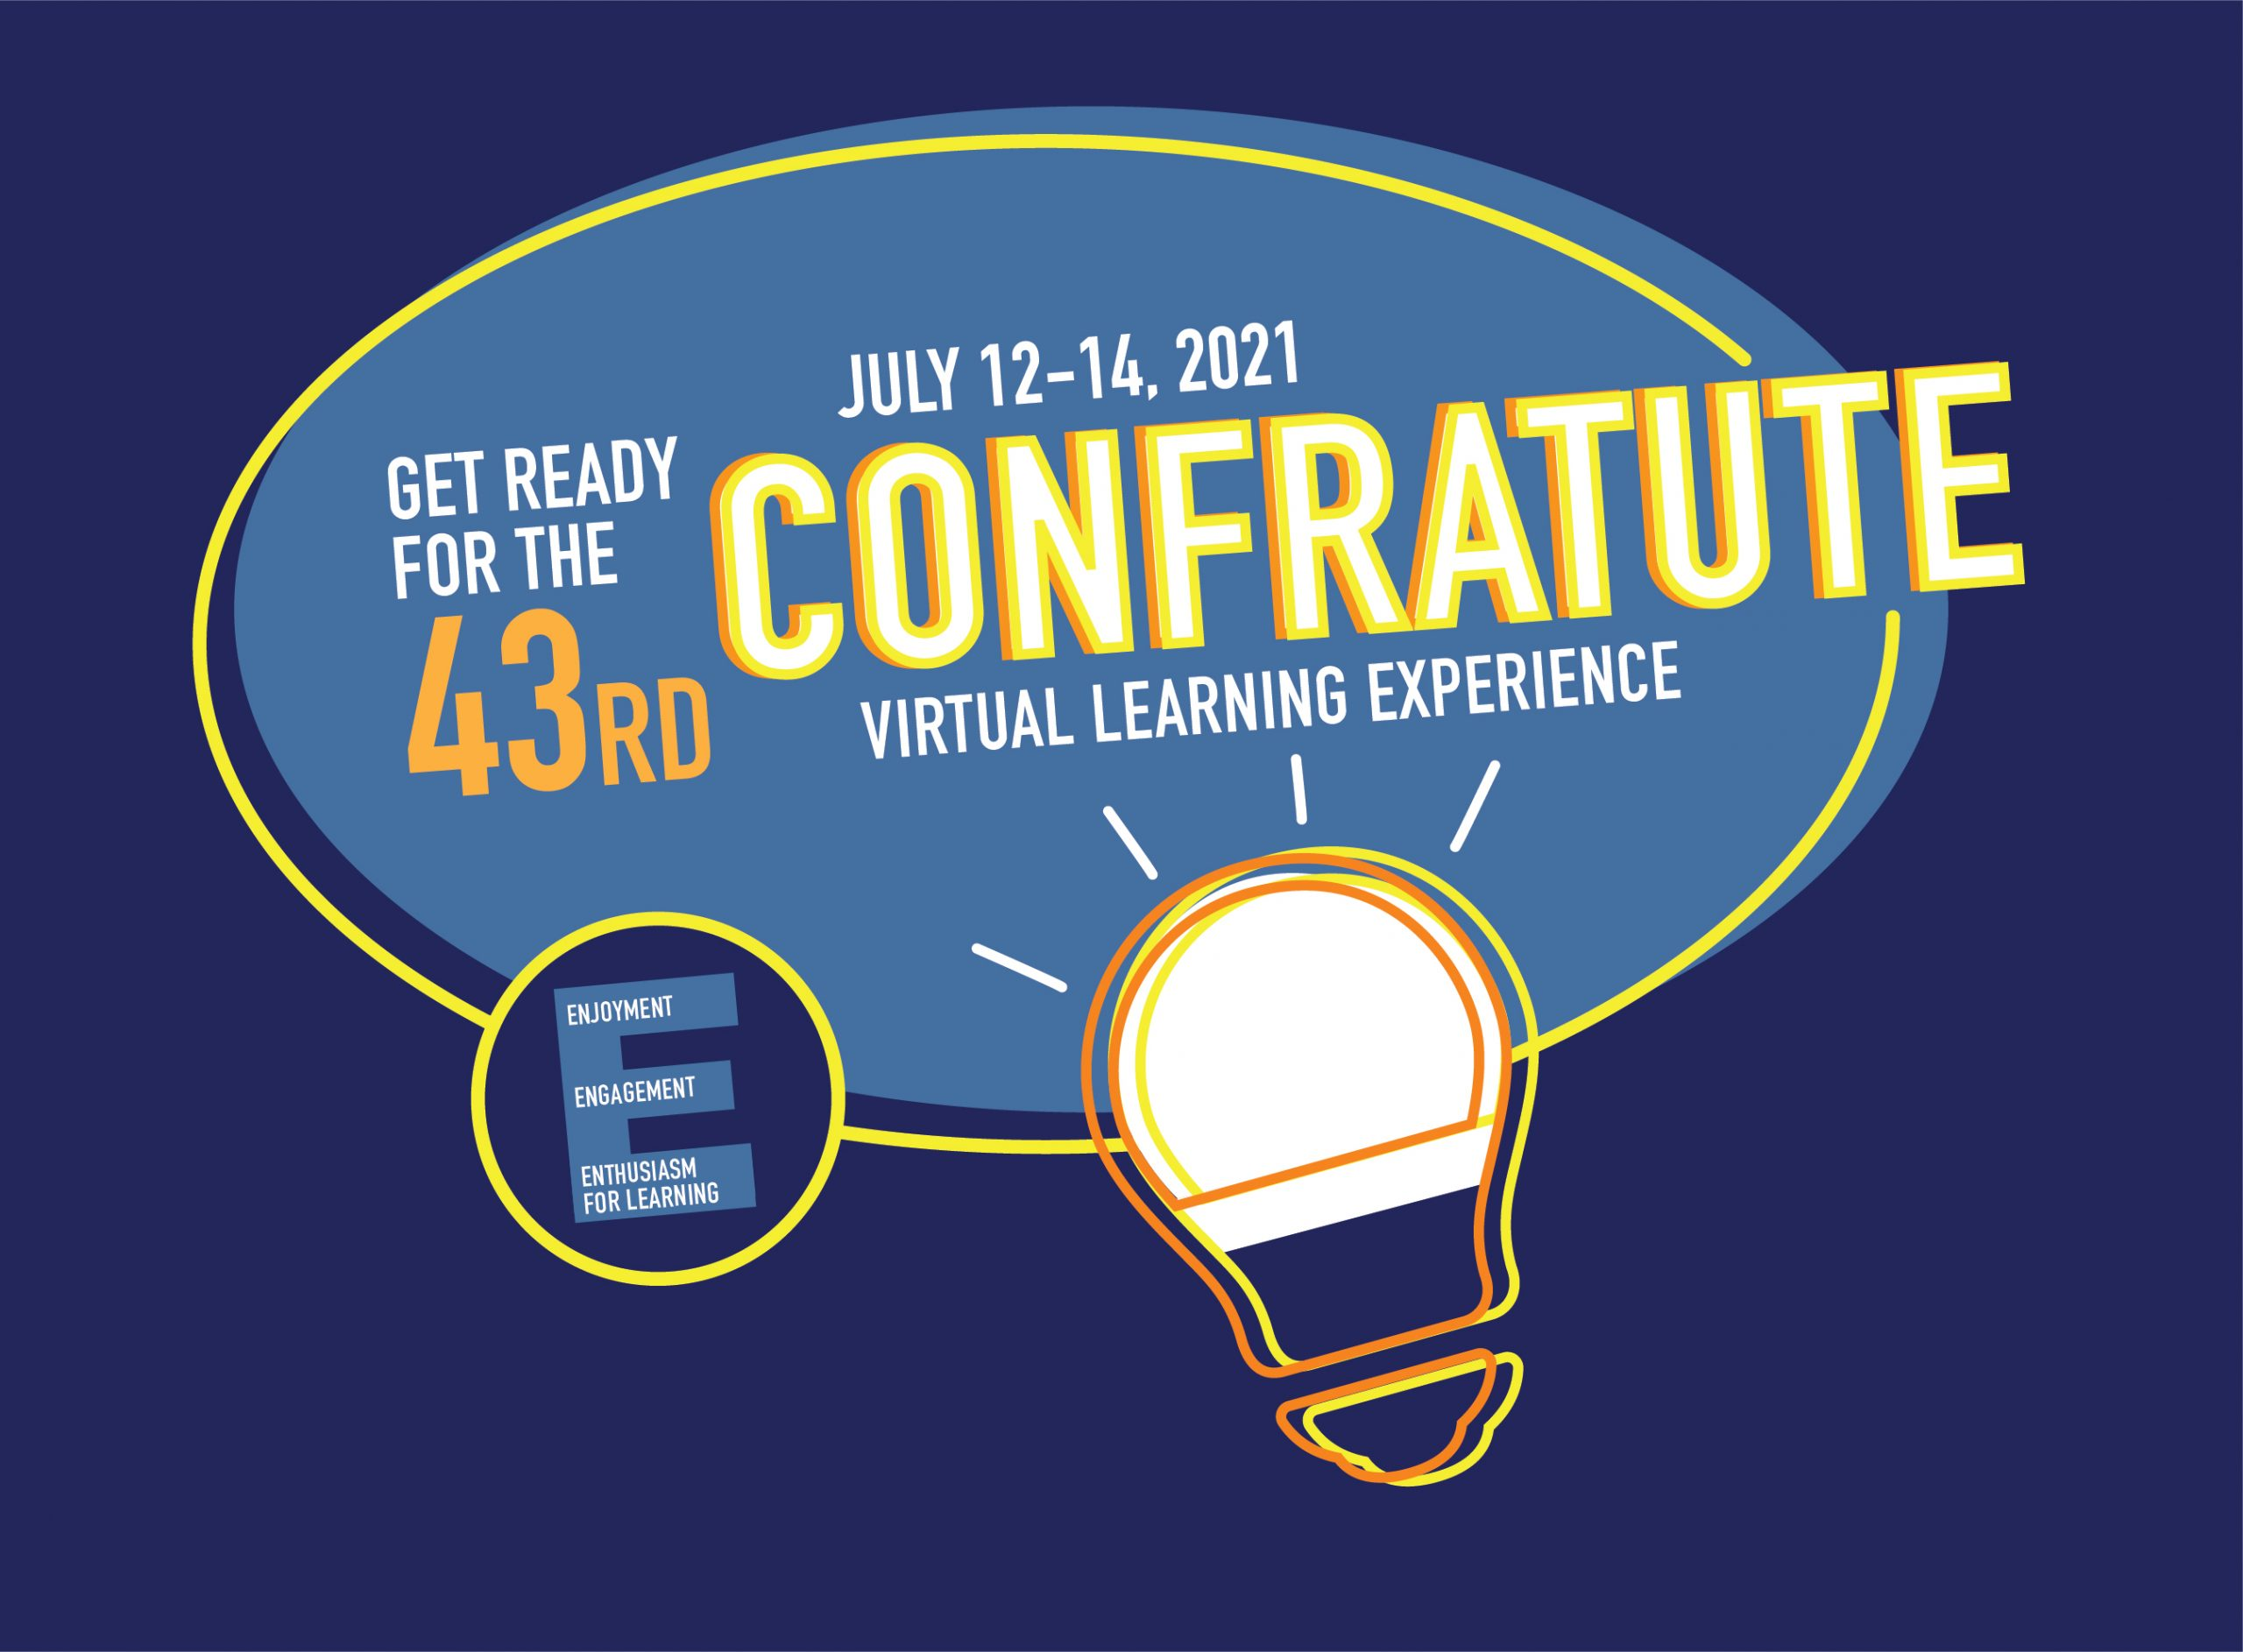 Join us July 12-14, 2021 for the 43rd Virtual Confratute at UConn